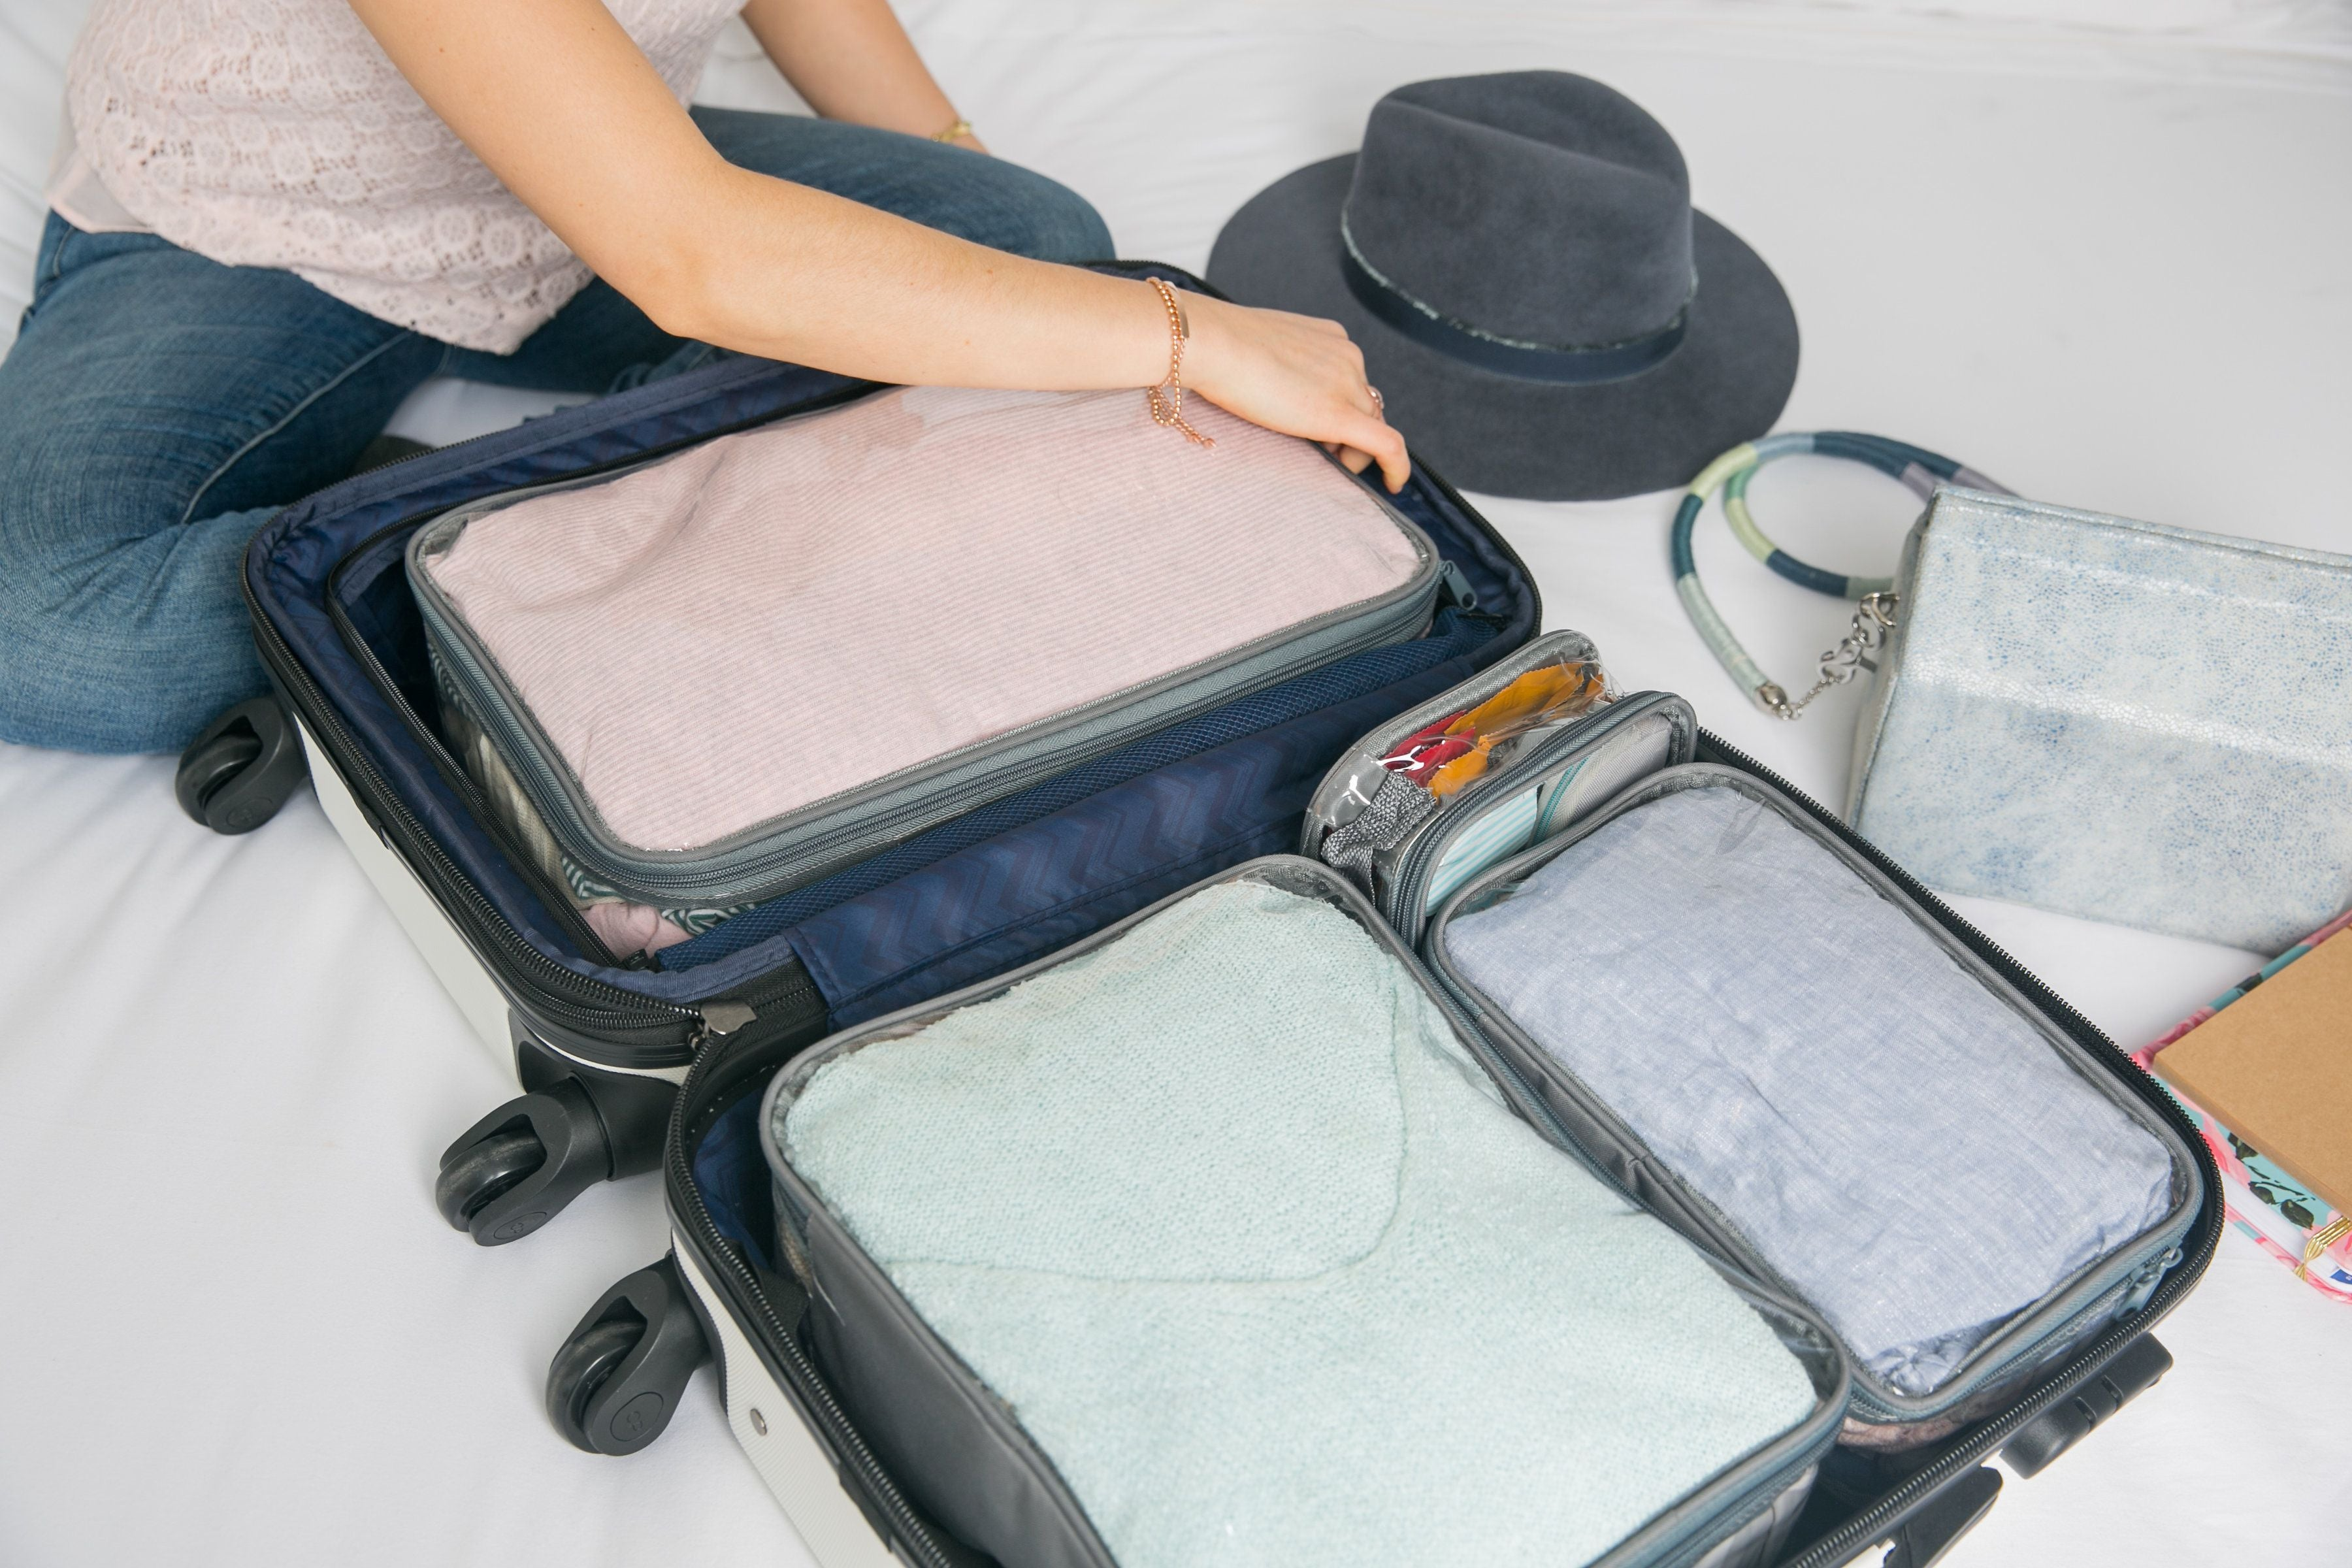 Packing a carry on suitcase using starter set packing cubes